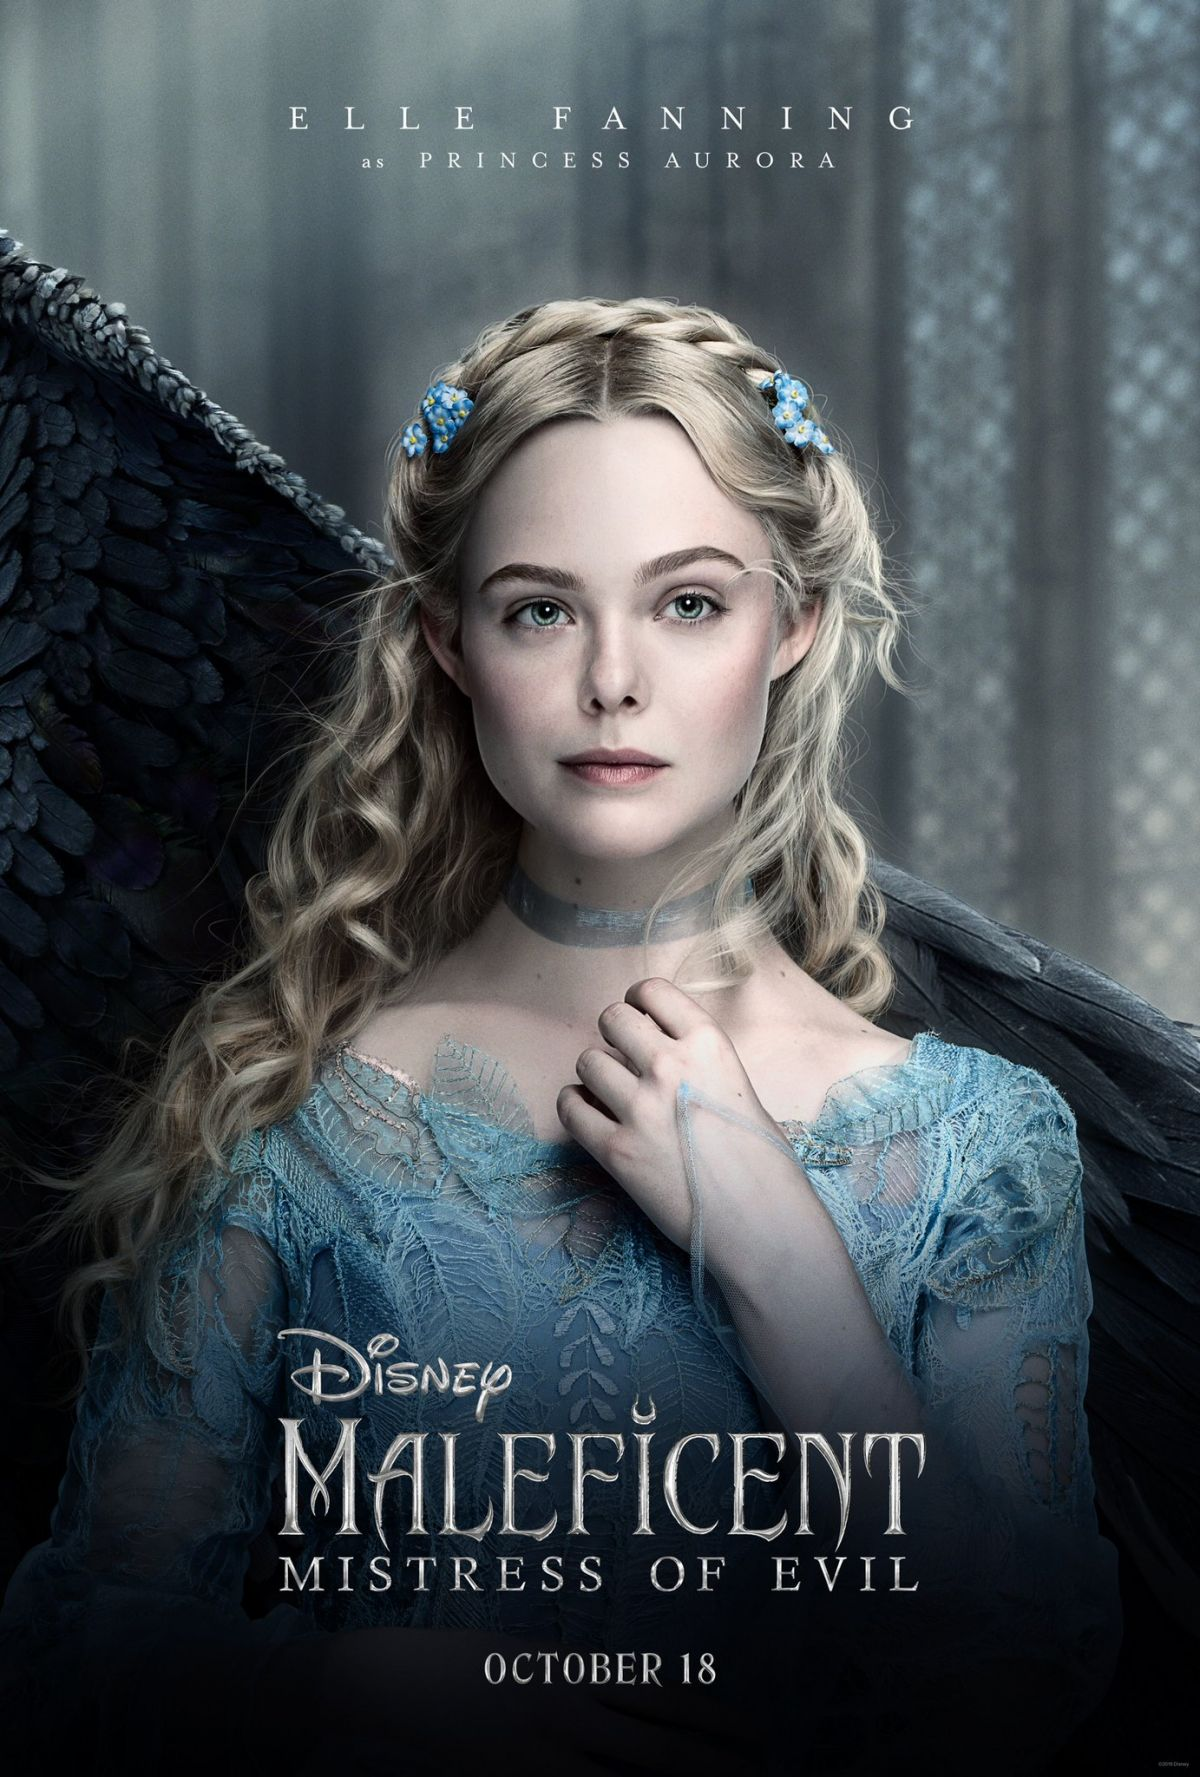 Elle Fanning Maleficent Mistress Of Evil Poster And